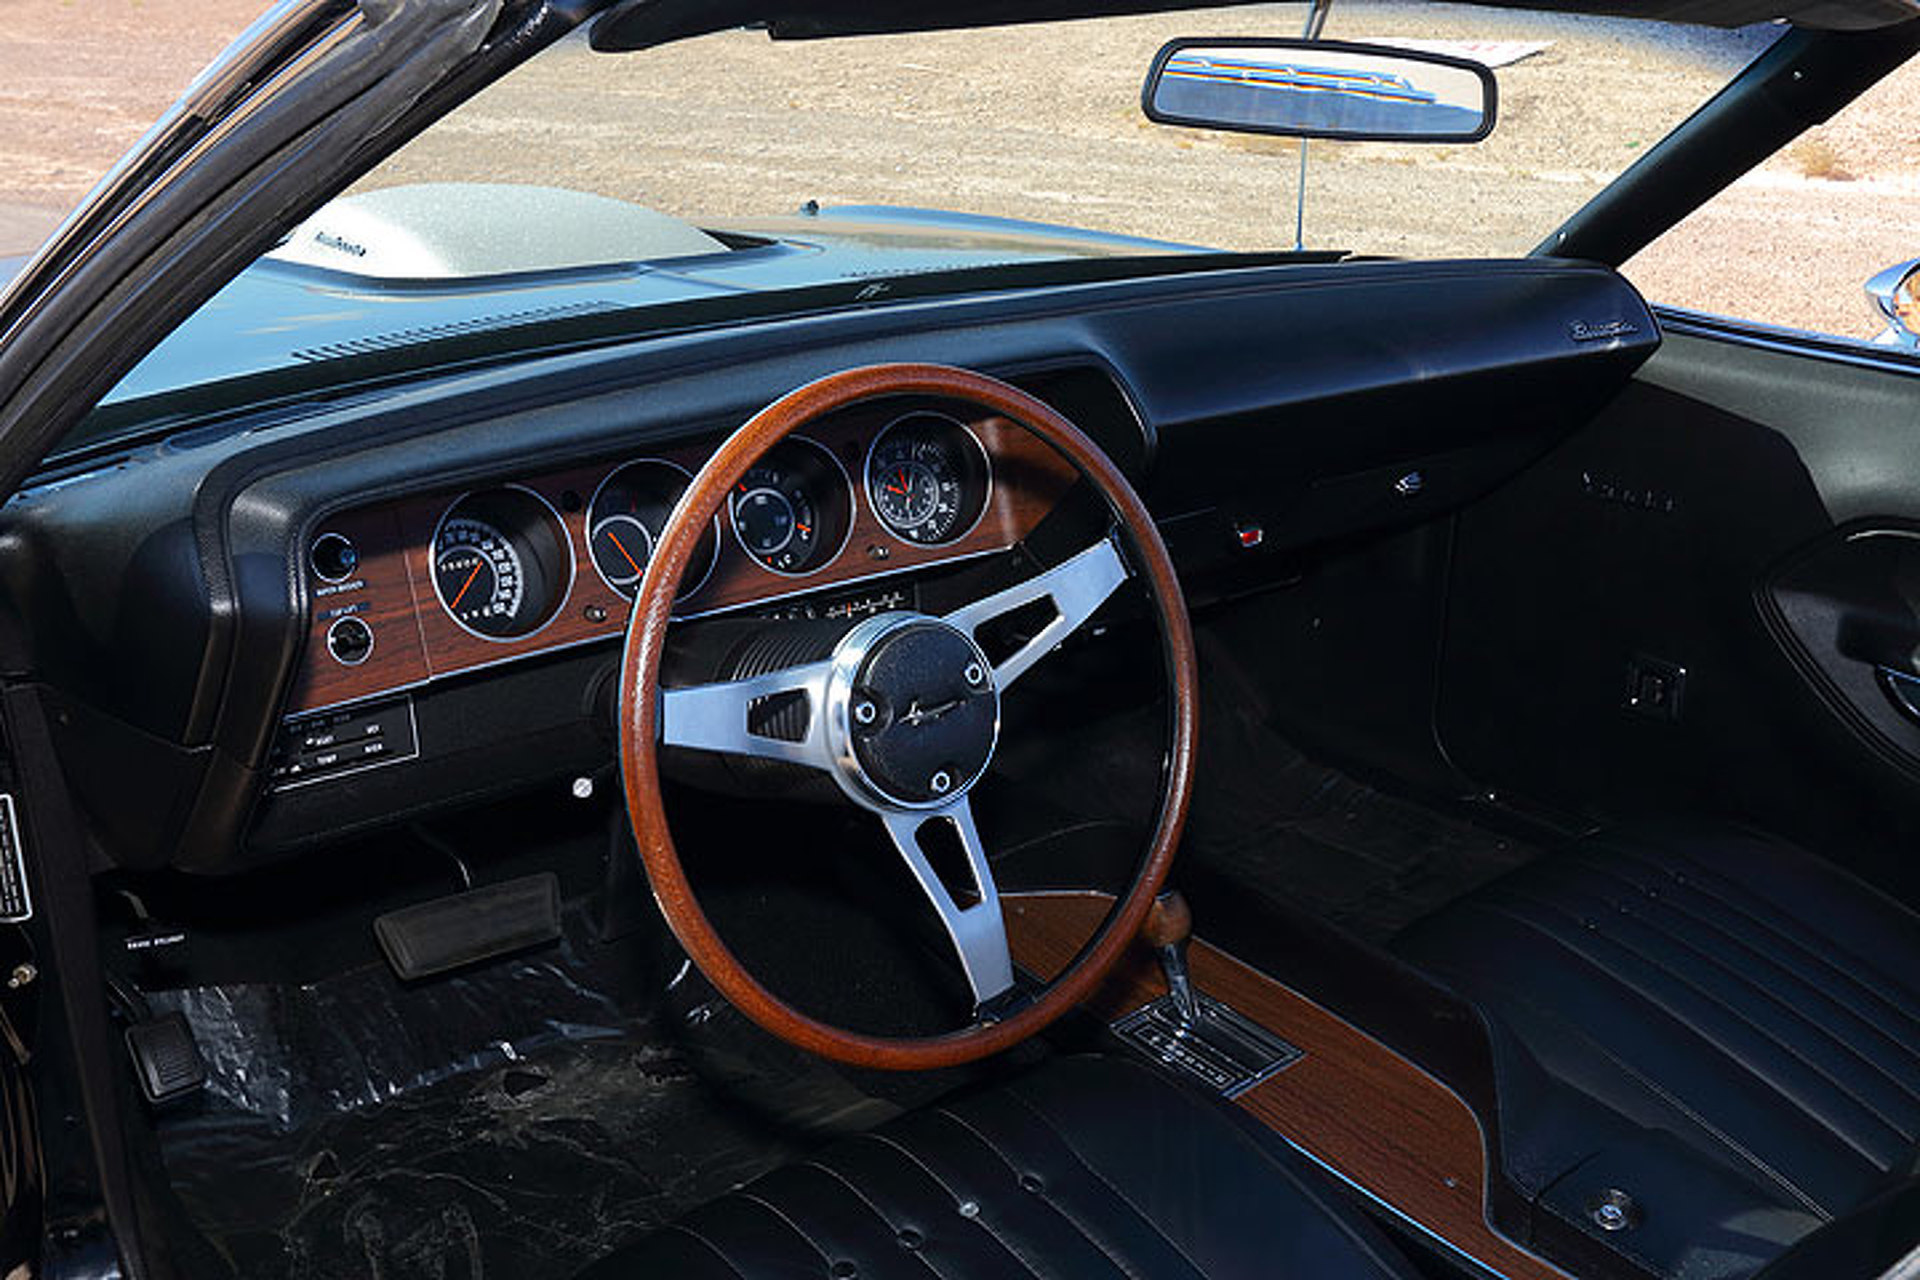 This 1970 Hemi Cuda Convertible Could Be Worth $3 Million